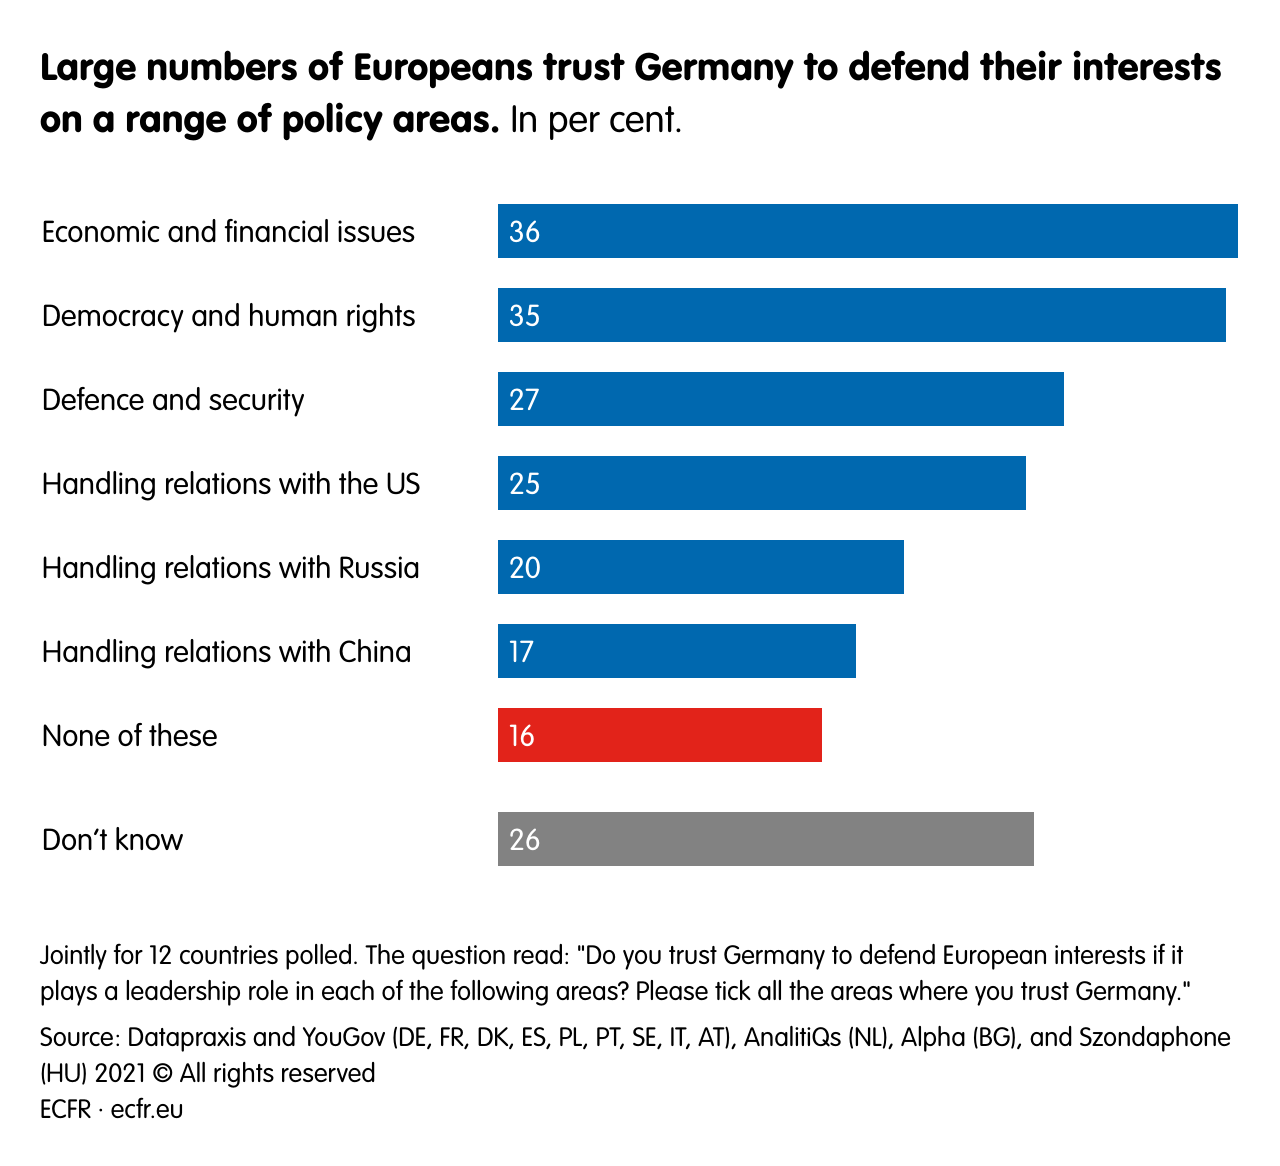 Large numbers of Europeans trust Germany to defend their interests on a range of policy areas.